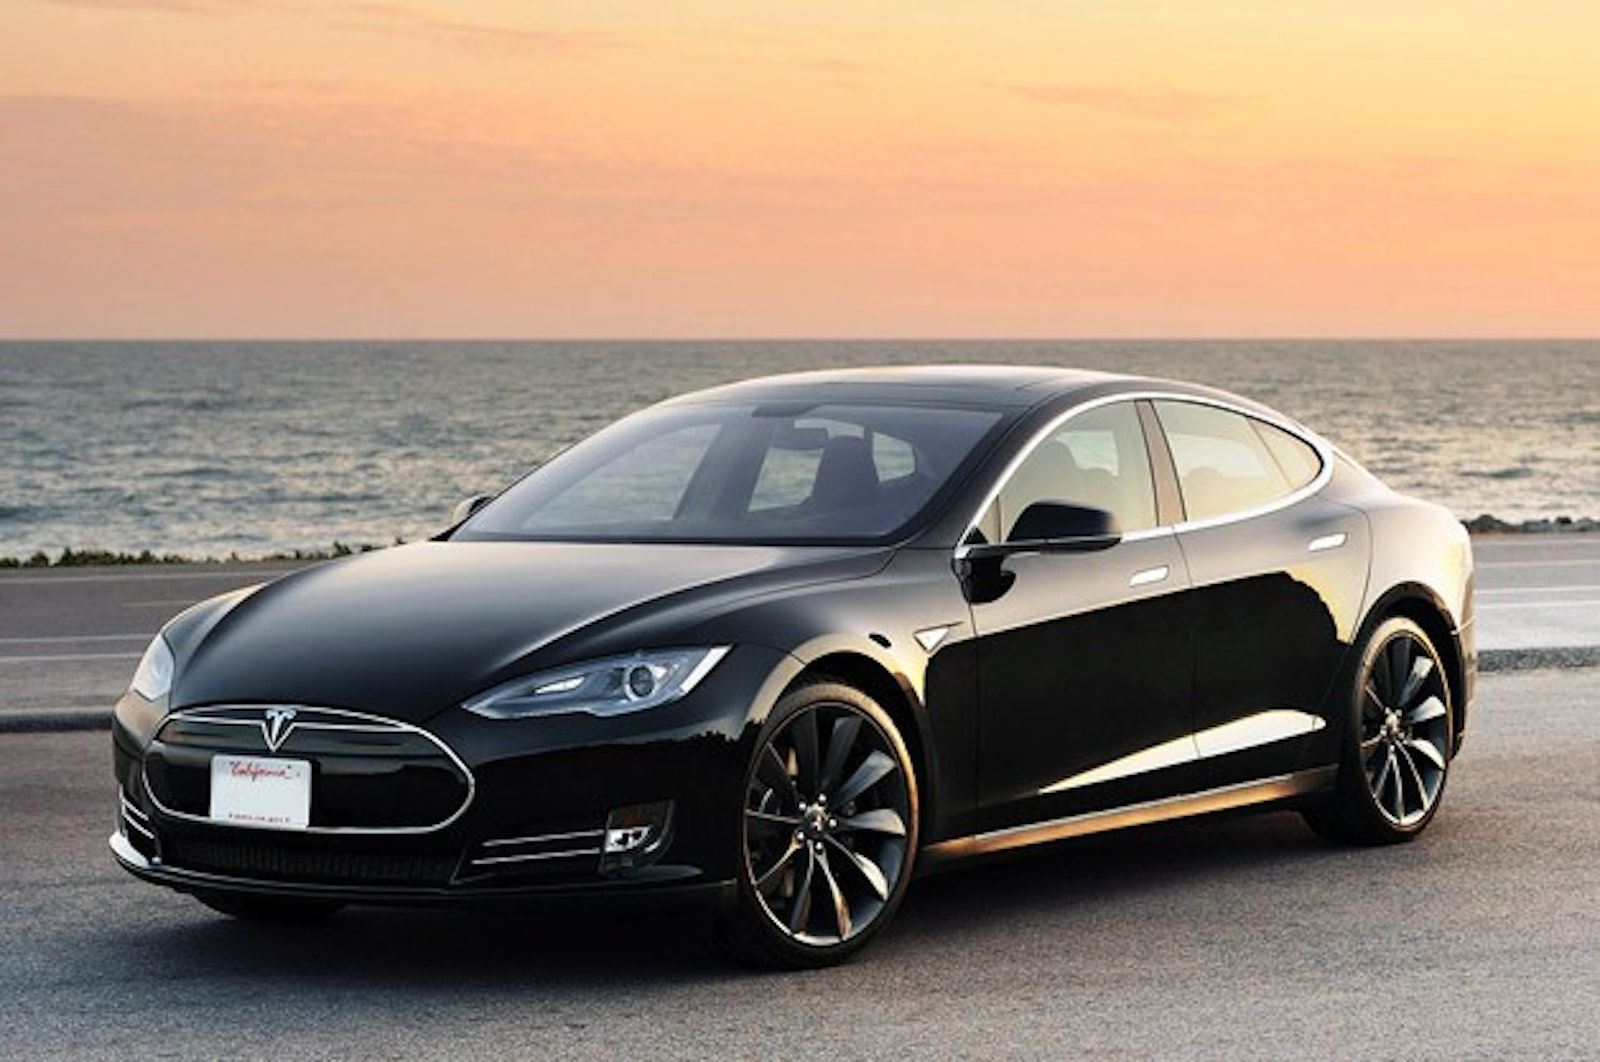 Kompulsa Ge Reports Jb Straubel Cto Of Tesla Motors Has Said He Thinks Will Be Able To Fully Charge Electric Car Batteries In Five Ten Minutes